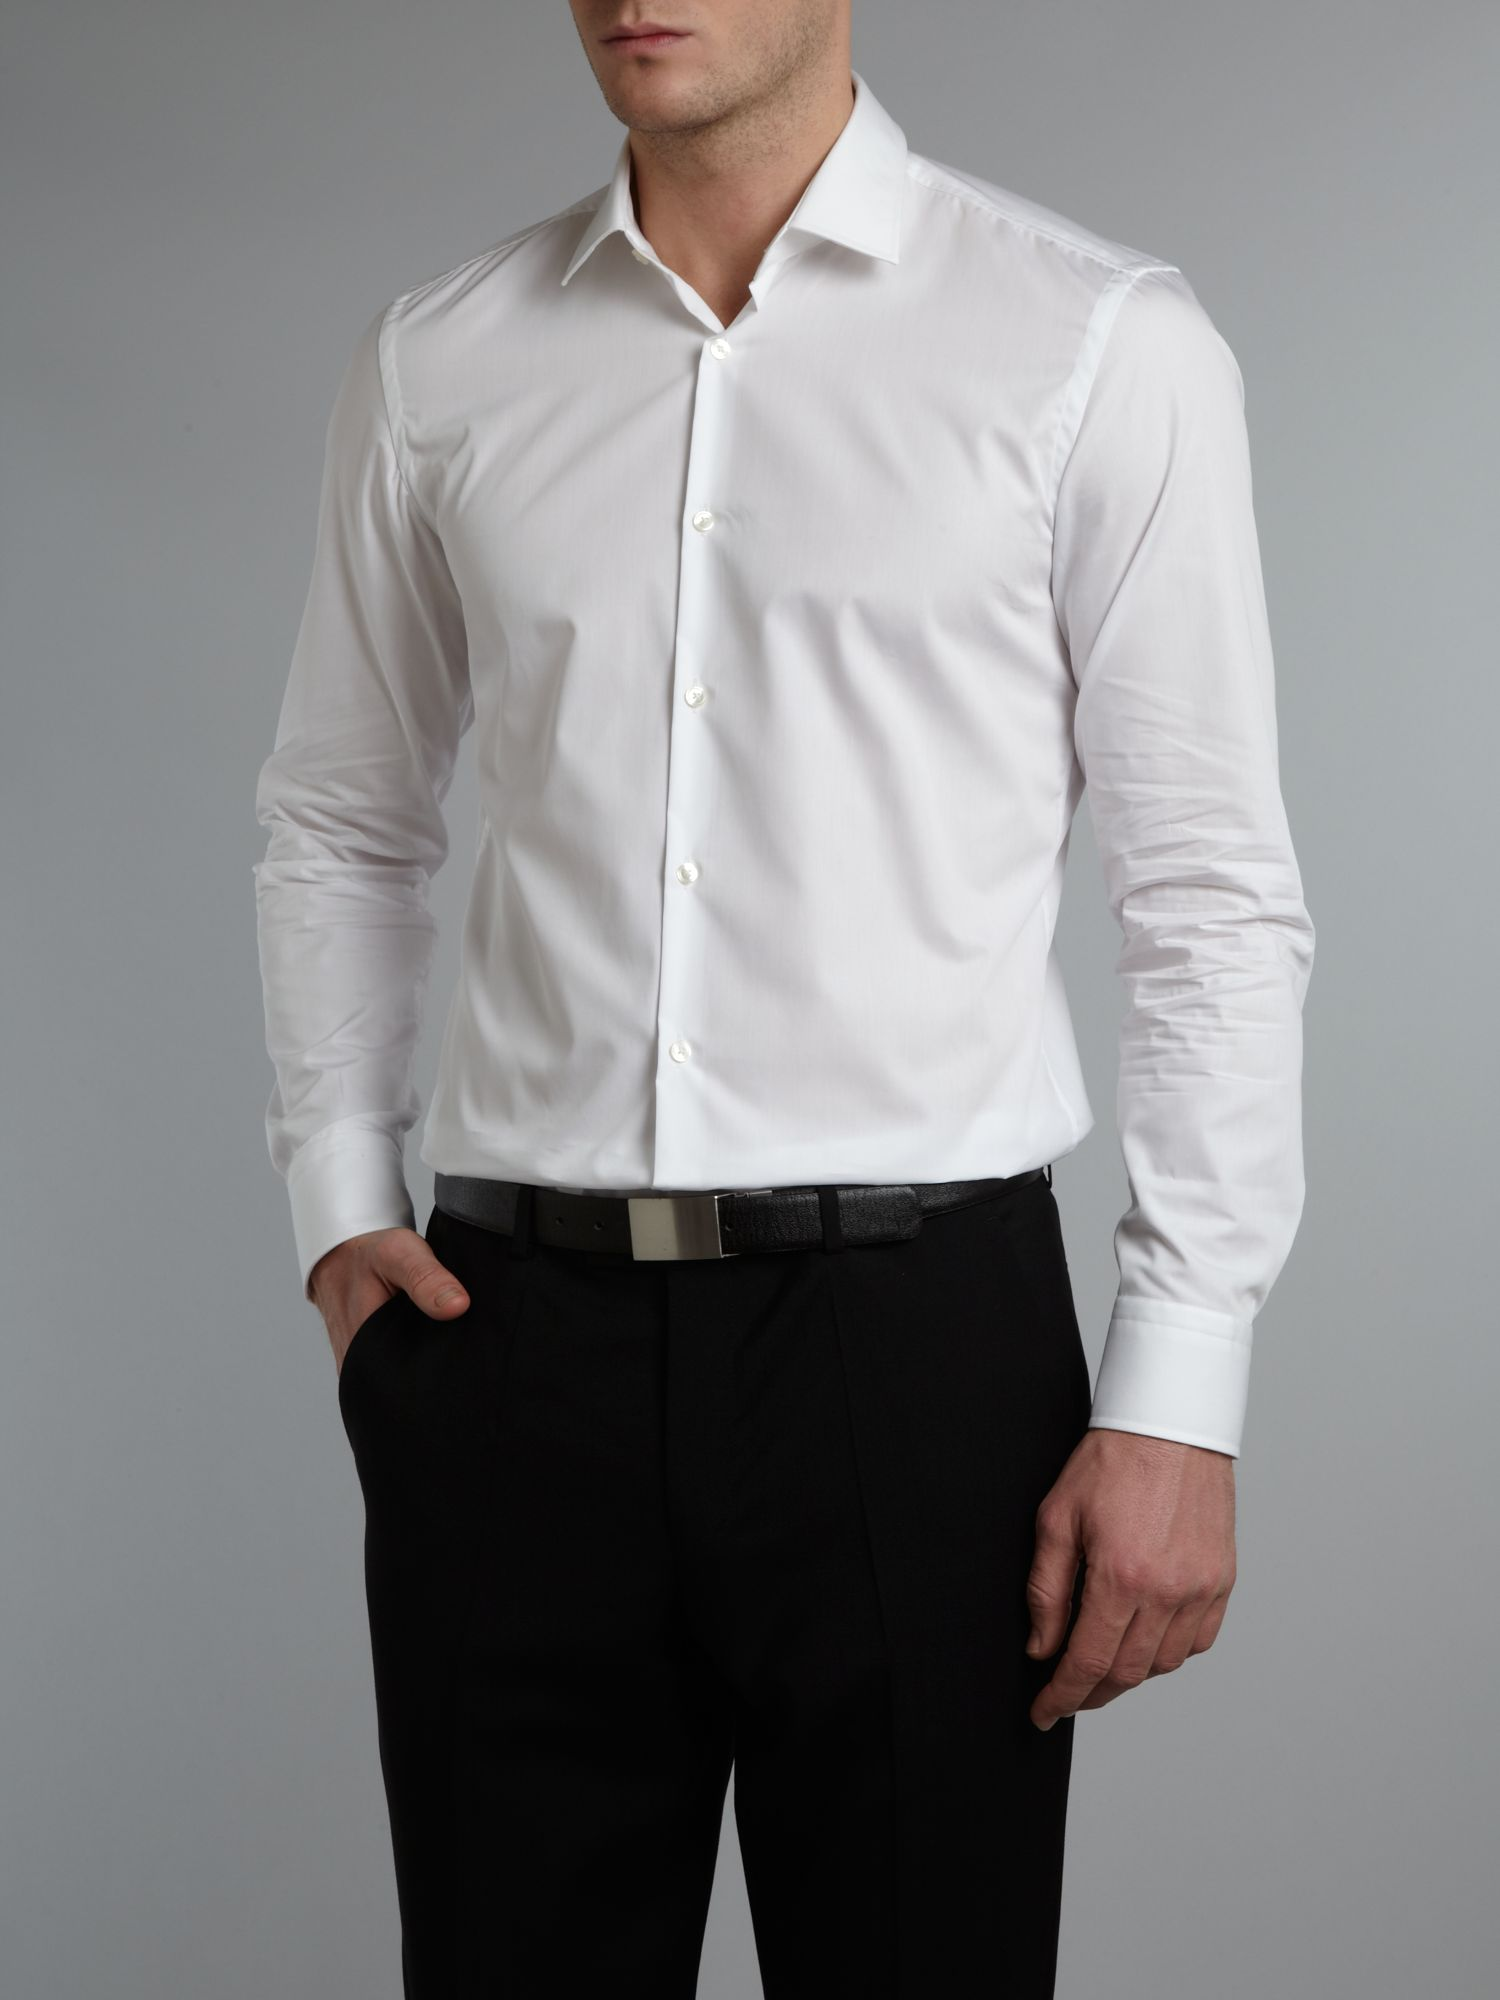 hugo boss fitted shirt. Black Bedroom Furniture Sets. Home Design Ideas